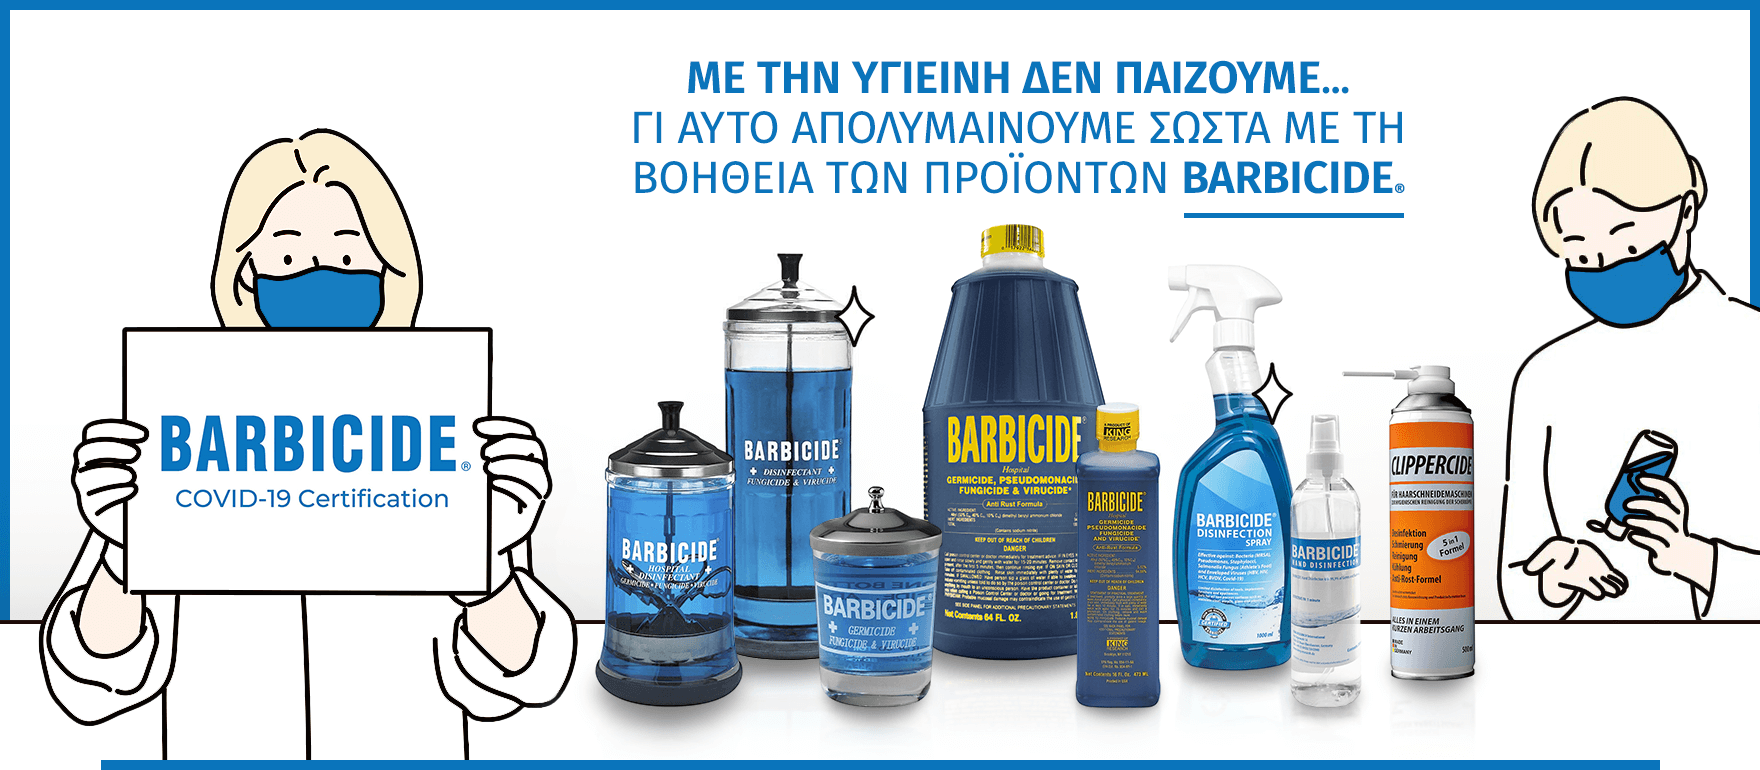 Barbicide Product Line